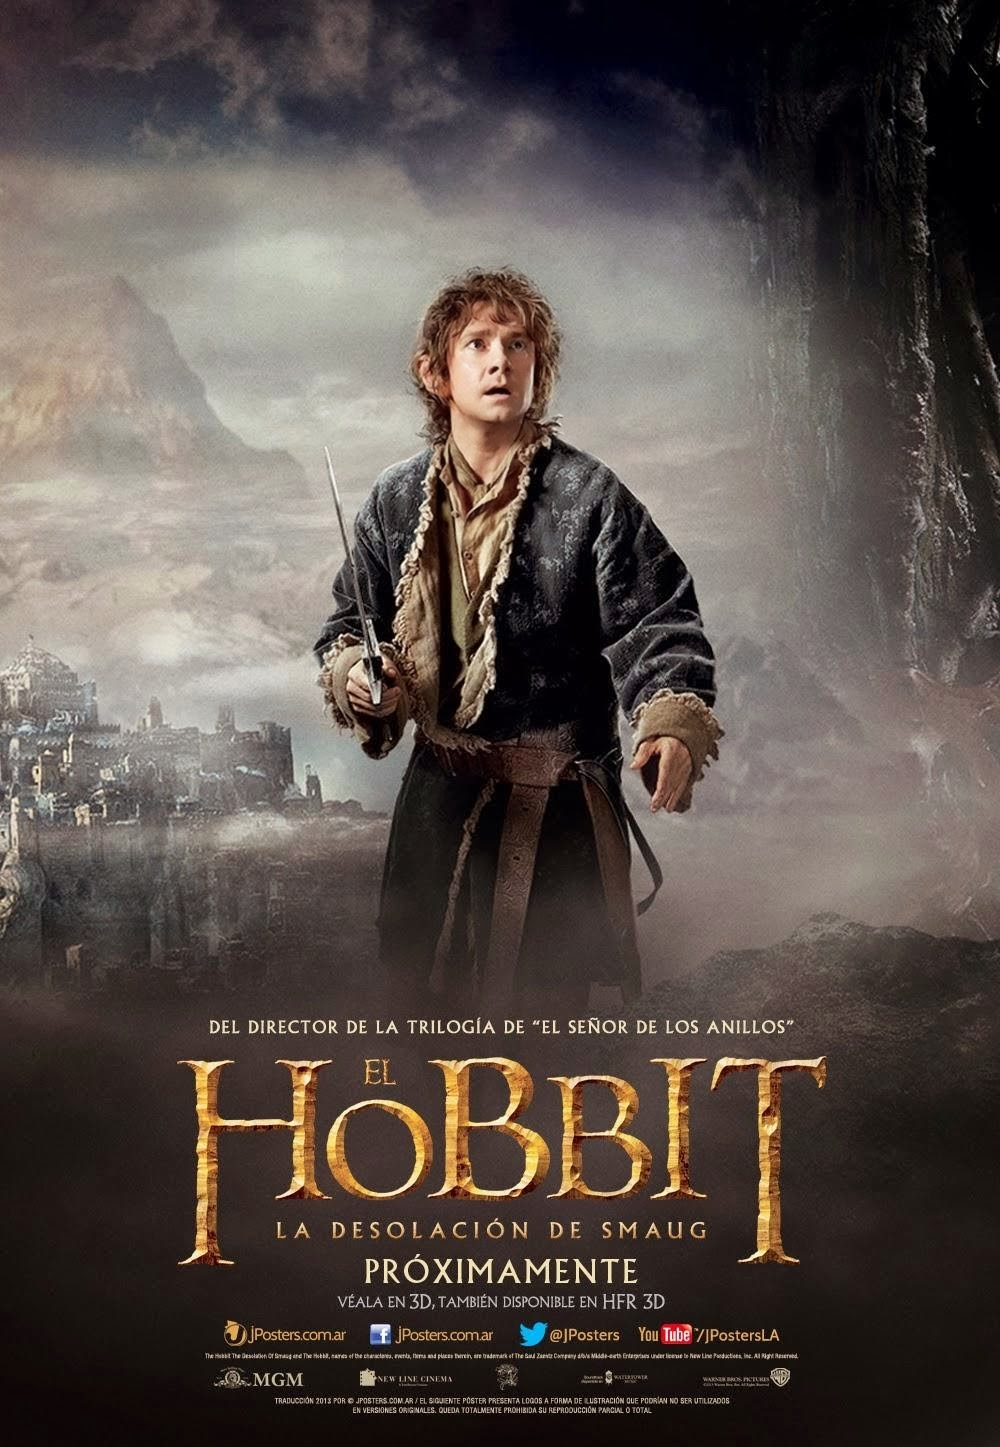 The Hobbit 2: The Desolation of Smaug BluRay 720p + Subtitle Indonesia